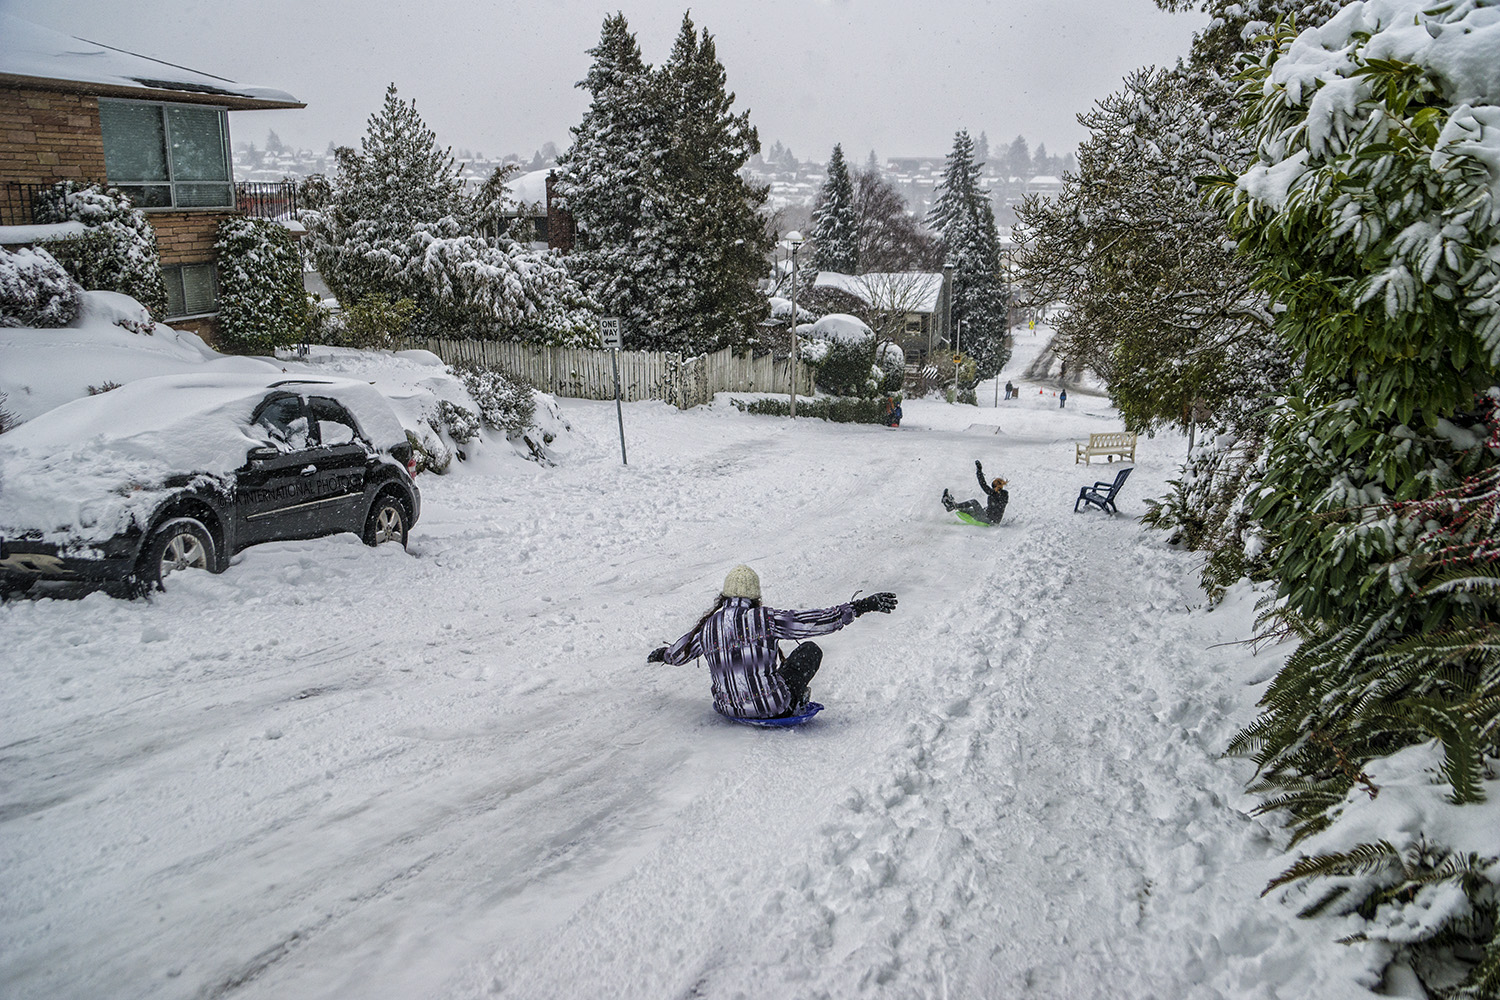 Sledding down McGraw Street, Magnolia, Seattle (February 13, 2021).